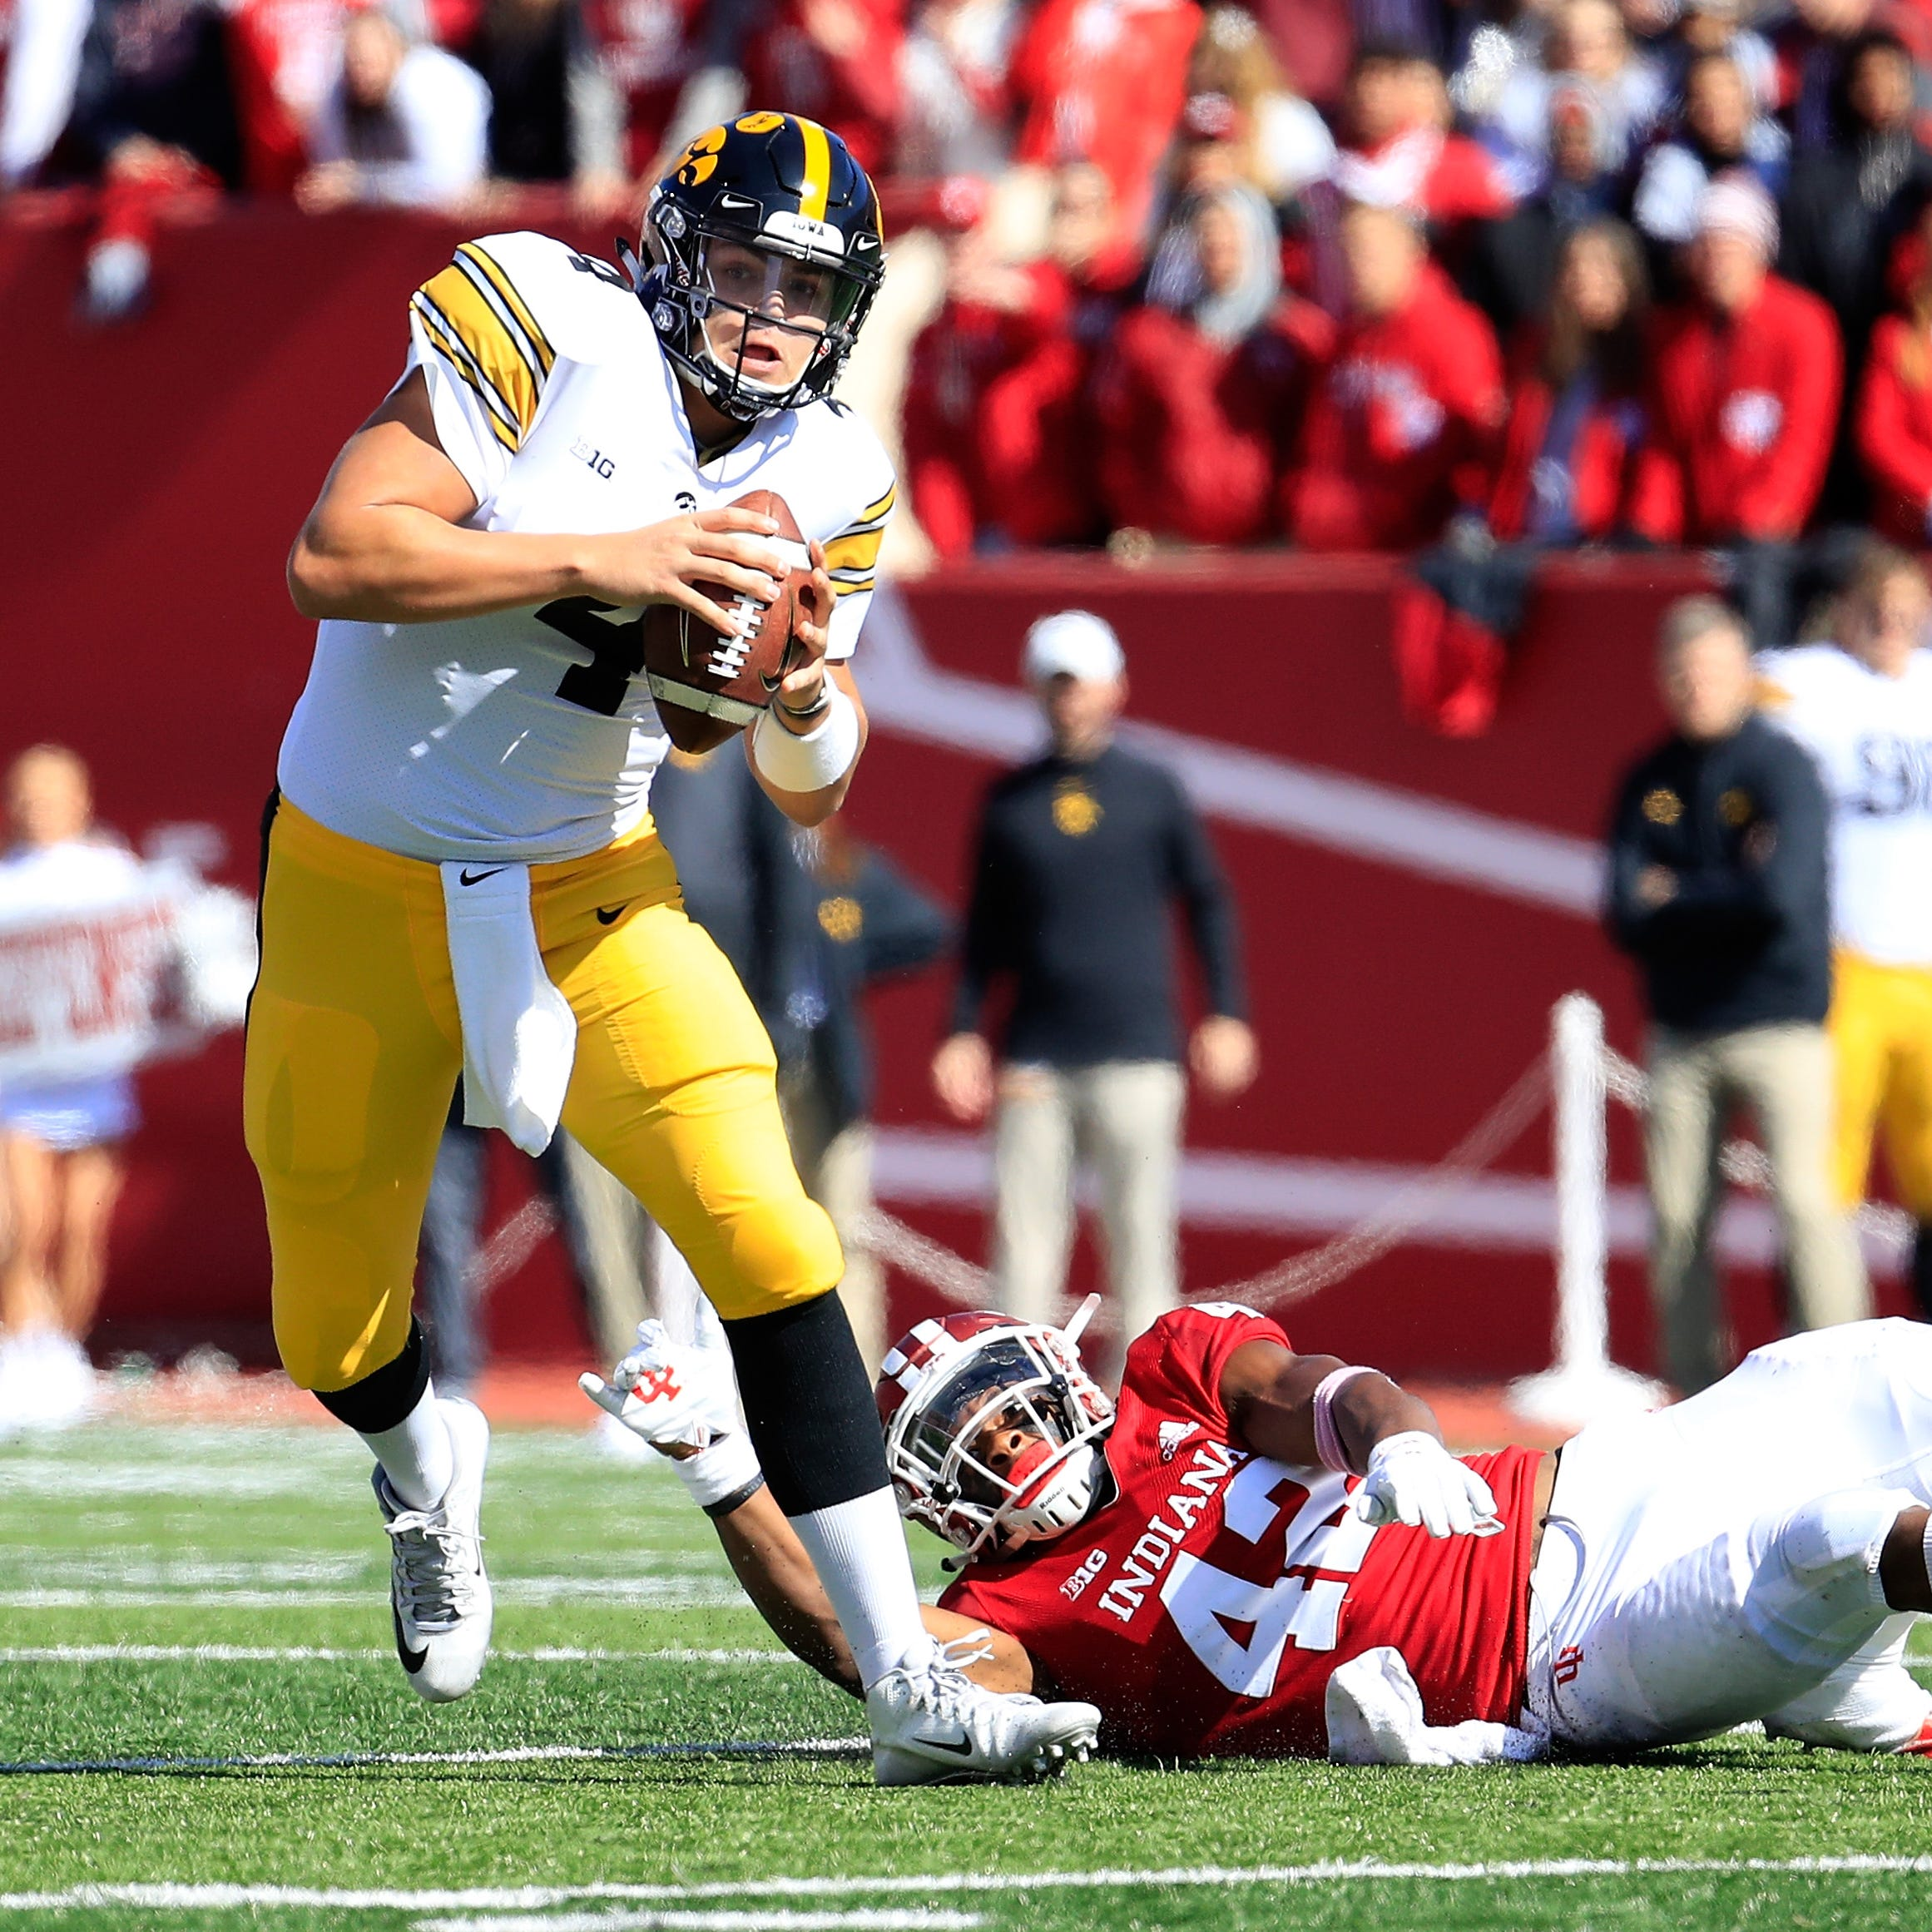 Iowa football: Quarterback Nate Stanley collects Big Ten honor after 6-TD game